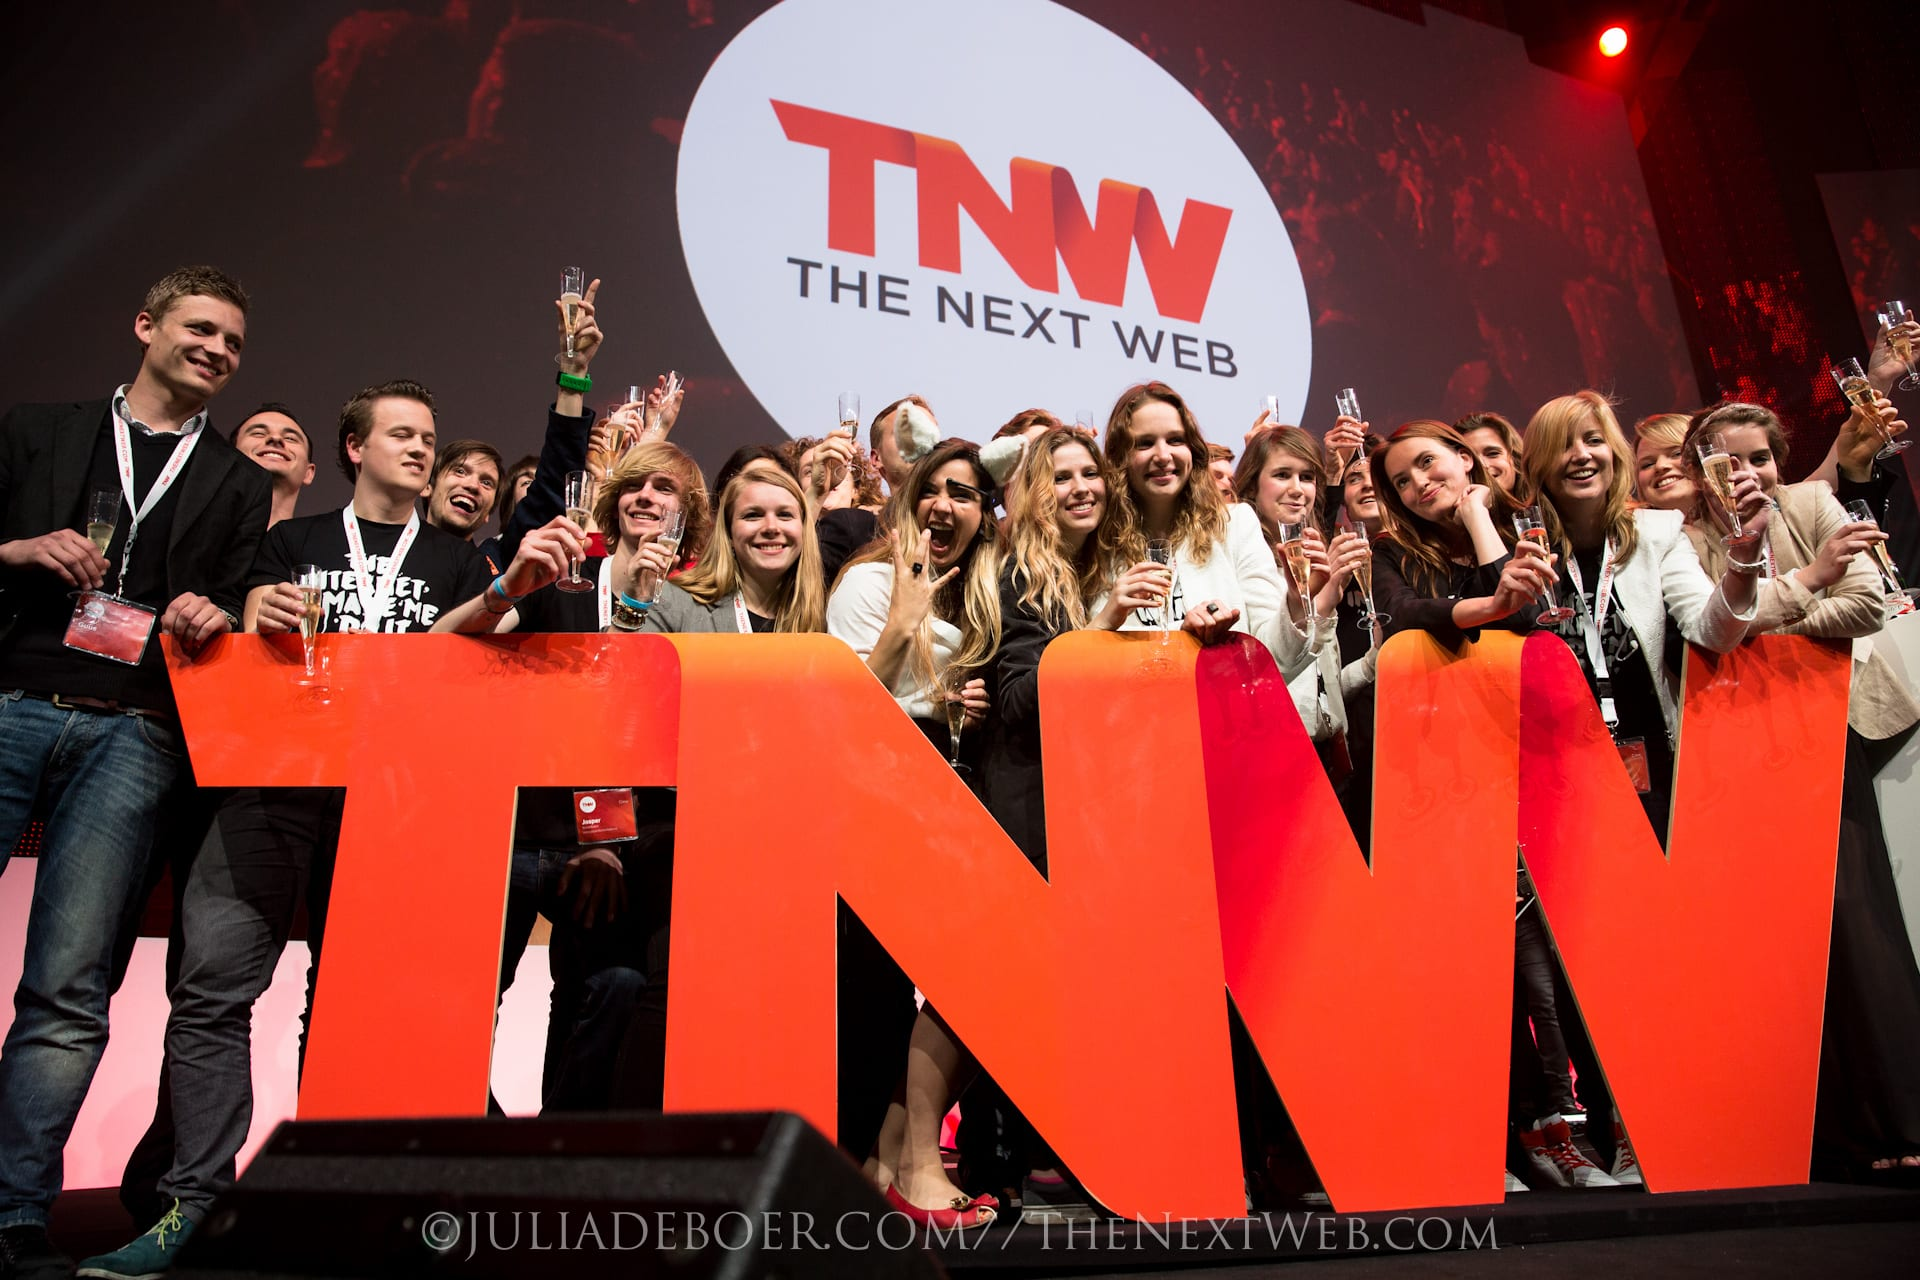 the-next-web-2013-numrush-aftermovie